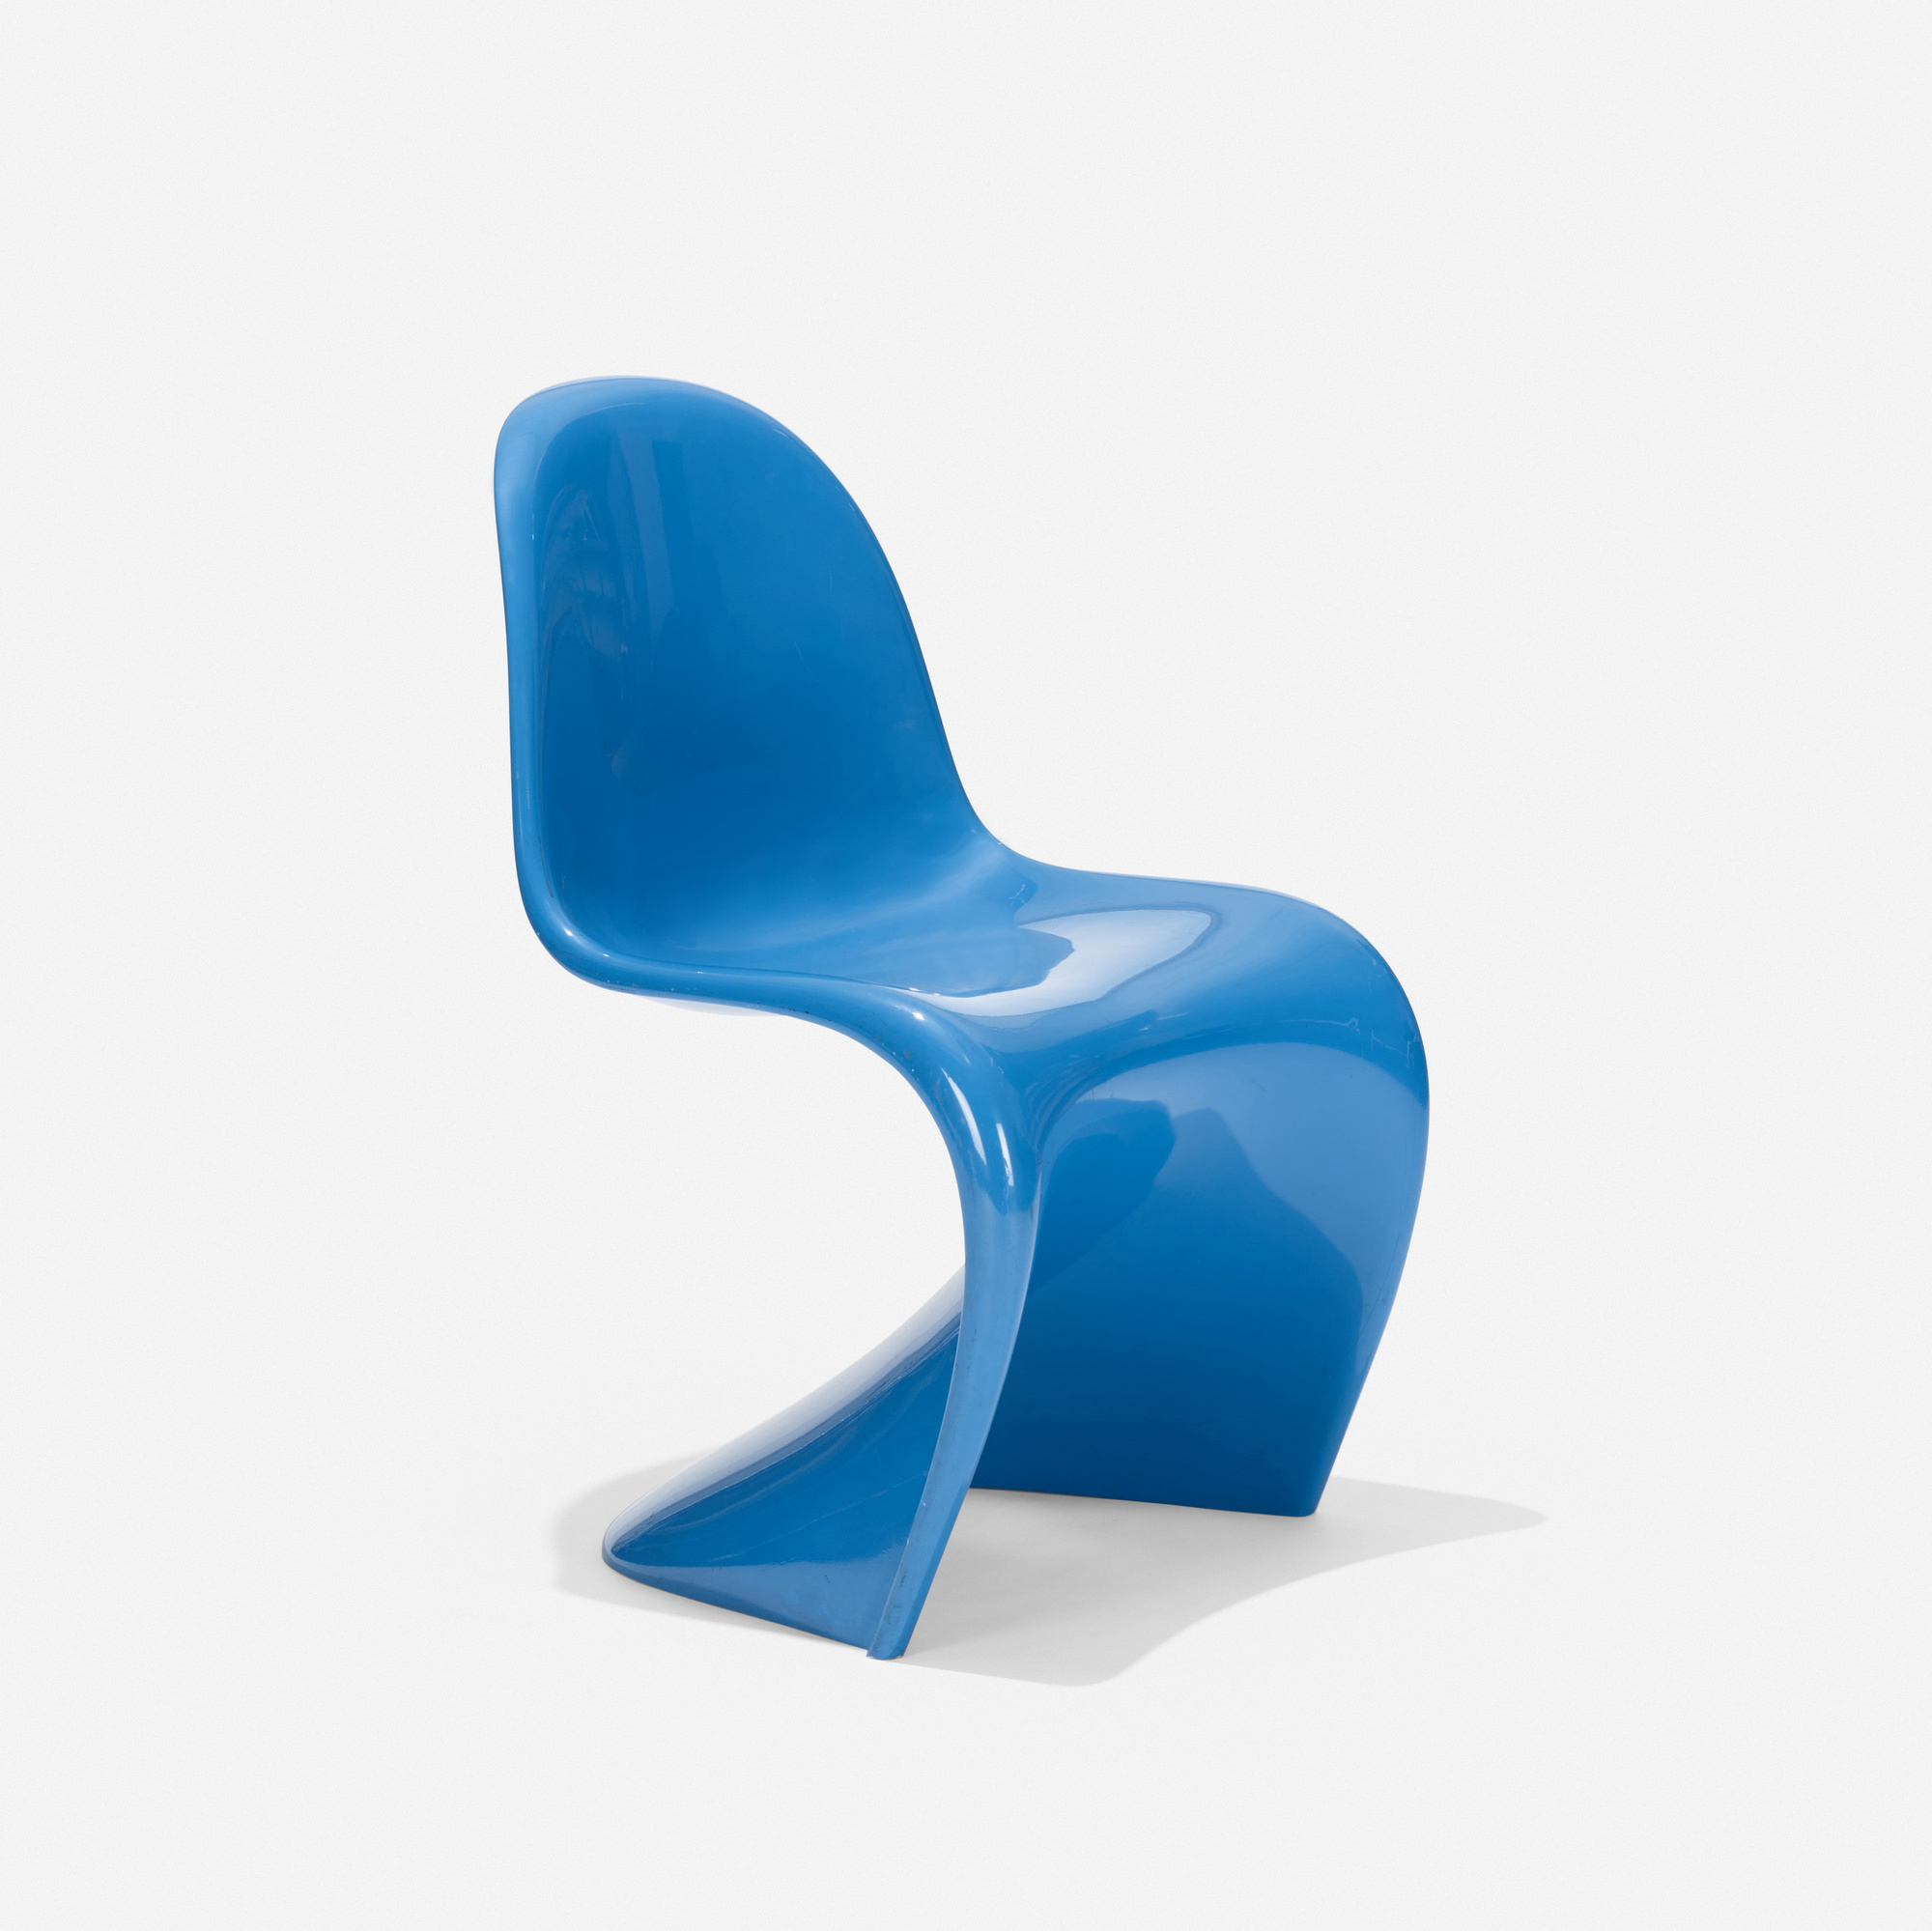 170: Verner Panton / Panton chair (2 of 3)